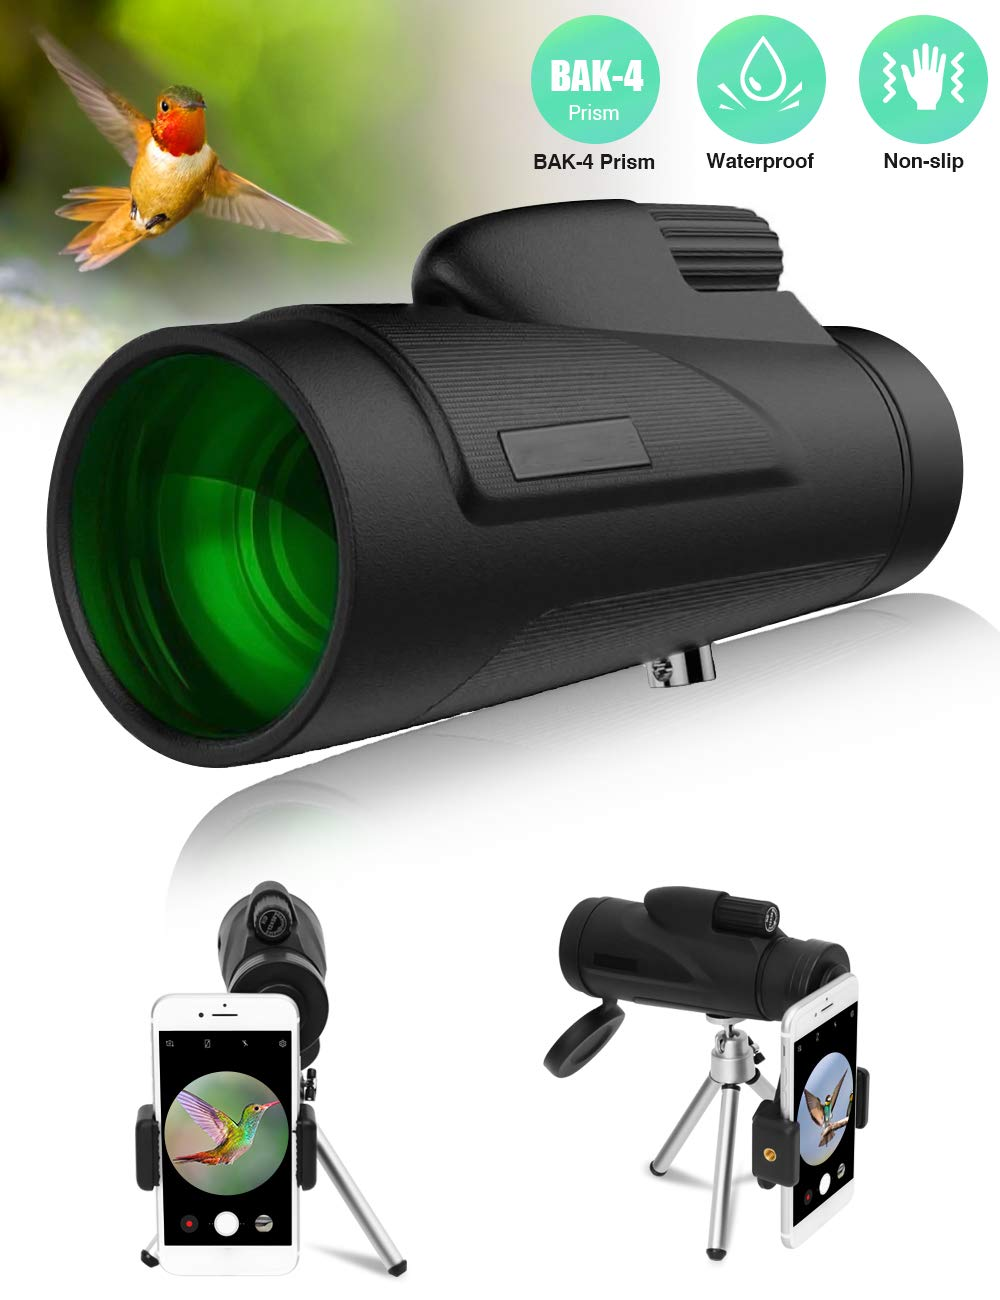 AIRSOFTPEAK Monocular Telescope 12x50 Low Night Vision BAK-4 Prism Monocular Scope HD for Smartphone Compact Monocular for Adults Bird Watching Hunting by AIRSOFTPEAK